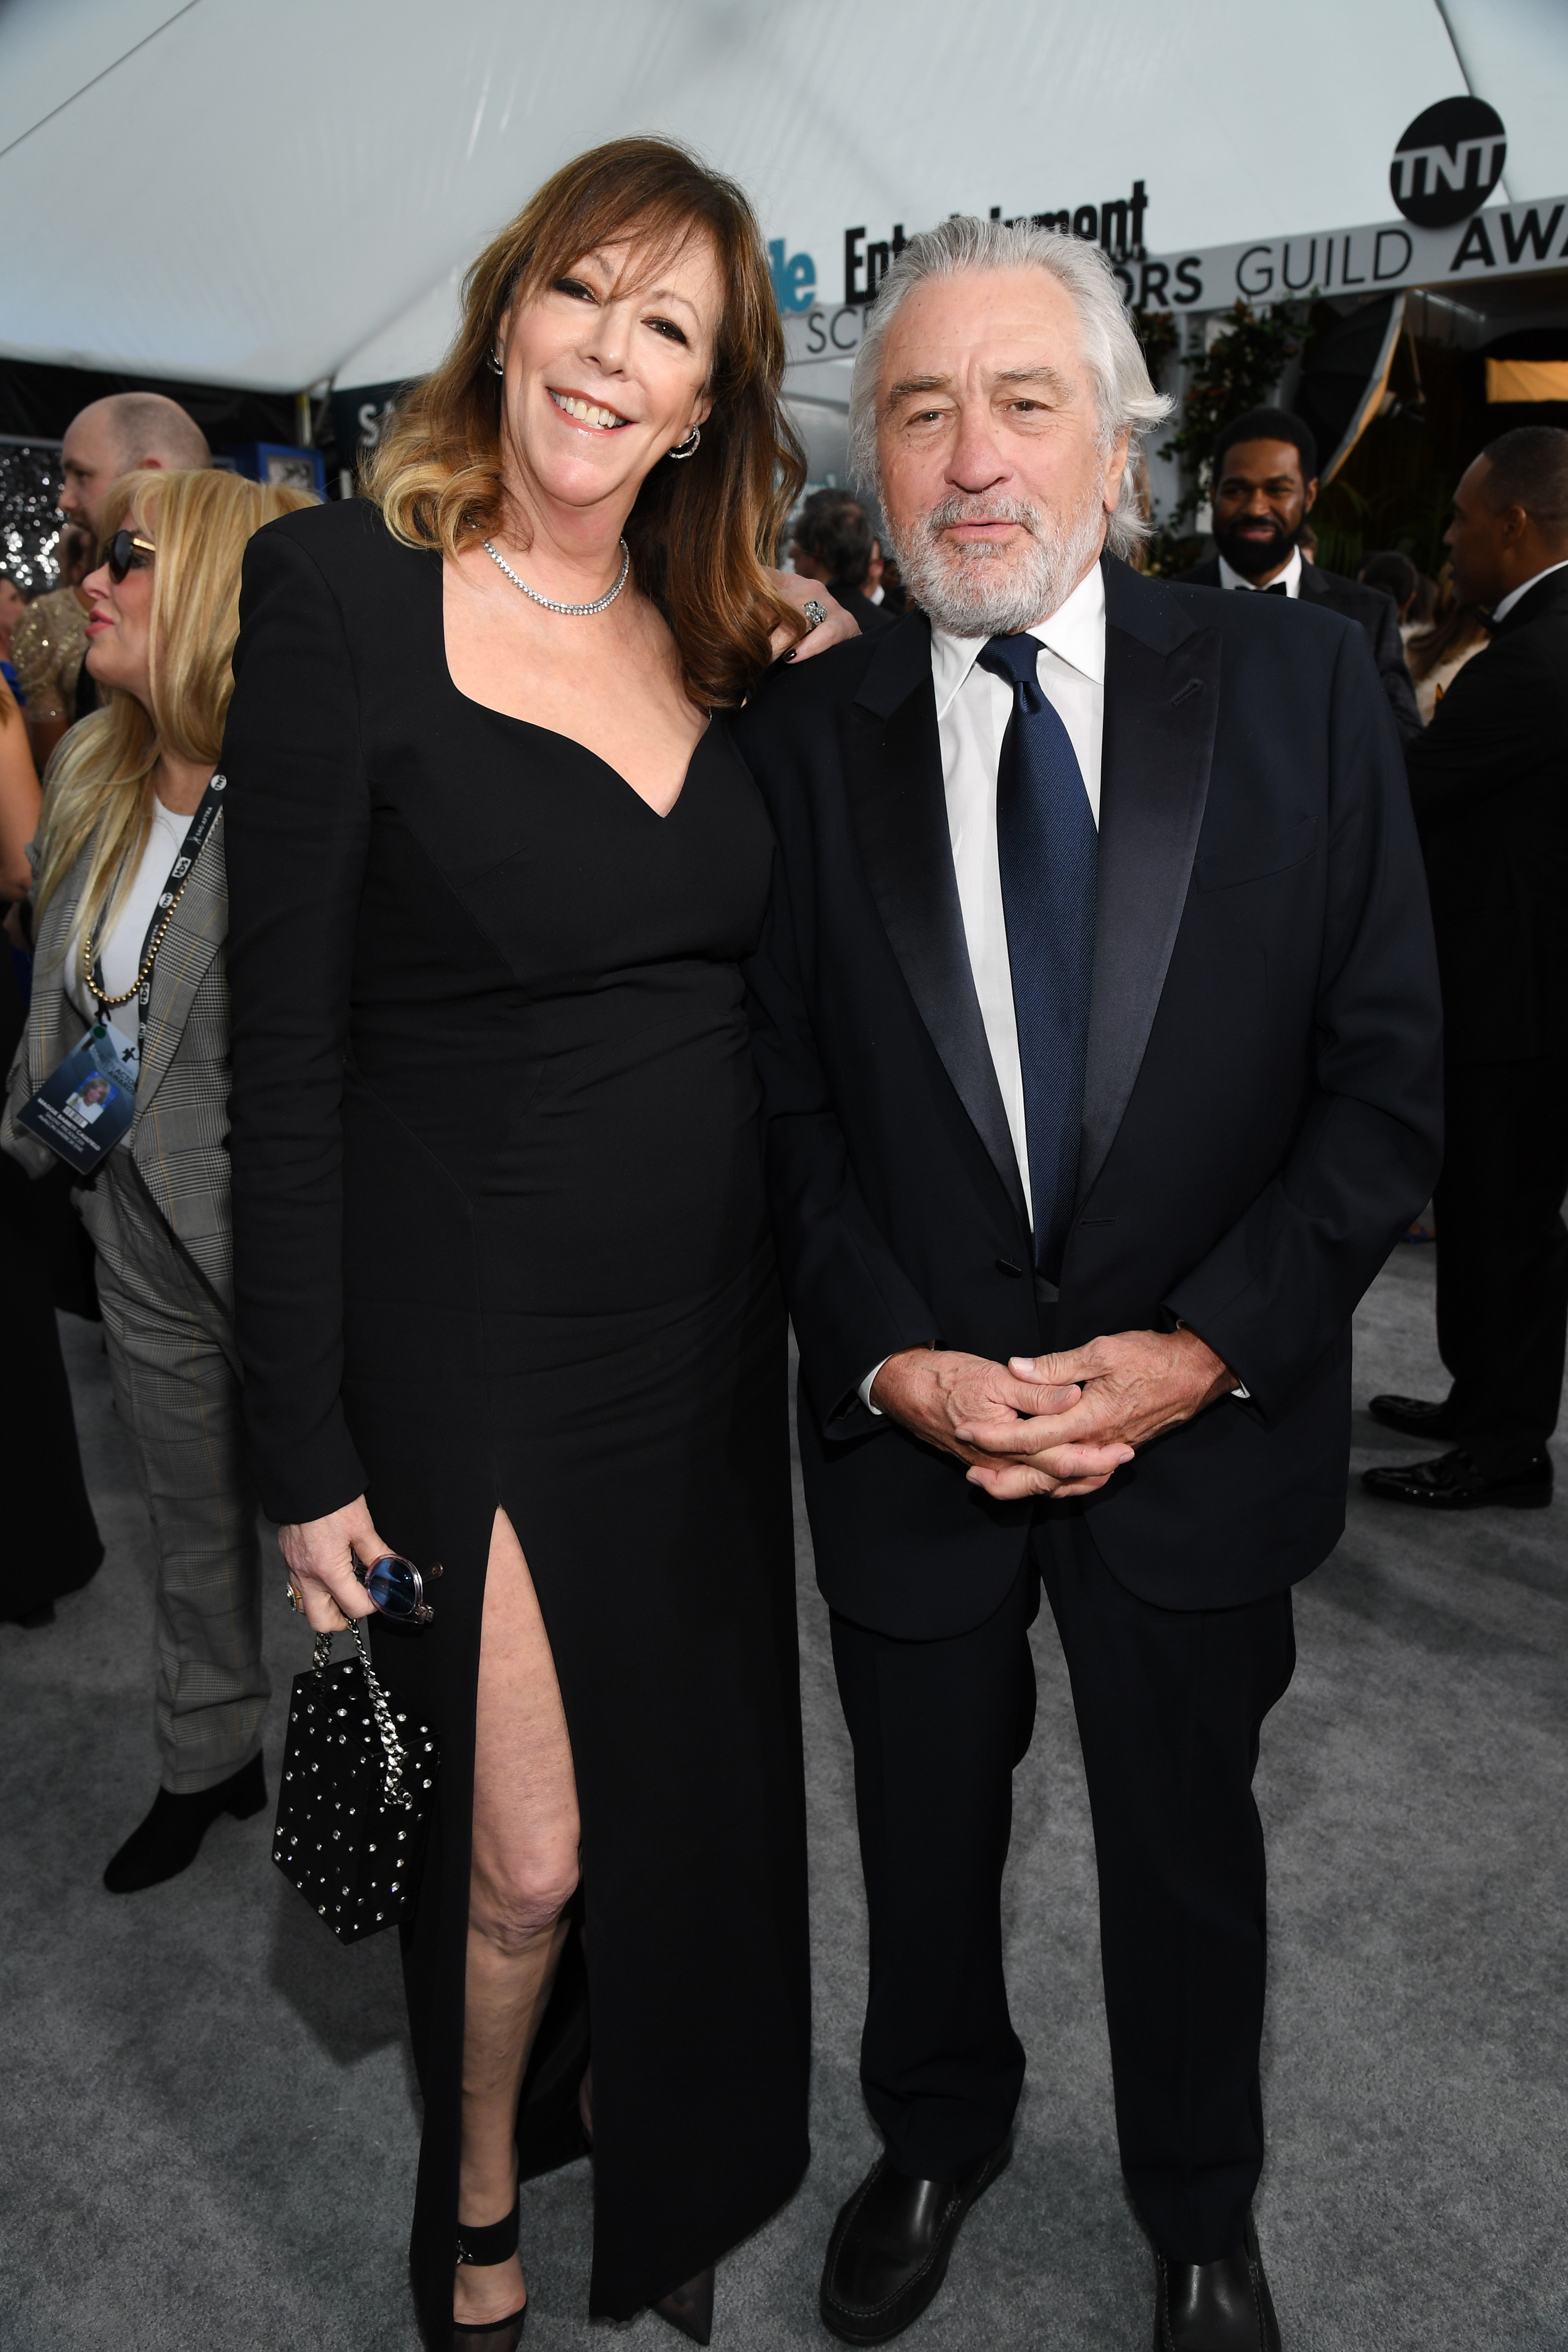 LOS ANGELES, CALIFORNIA - JANUARY 19: (L-R) Jane Rosenthal and Robert De Niro attend the 26th Annual Screen ActorsGuild Awards at The Shrine Auditorium on January 19, 2020 in Los Angeles, California. 721336 (Photo by Kevin Mazur/Getty Images for Turner)